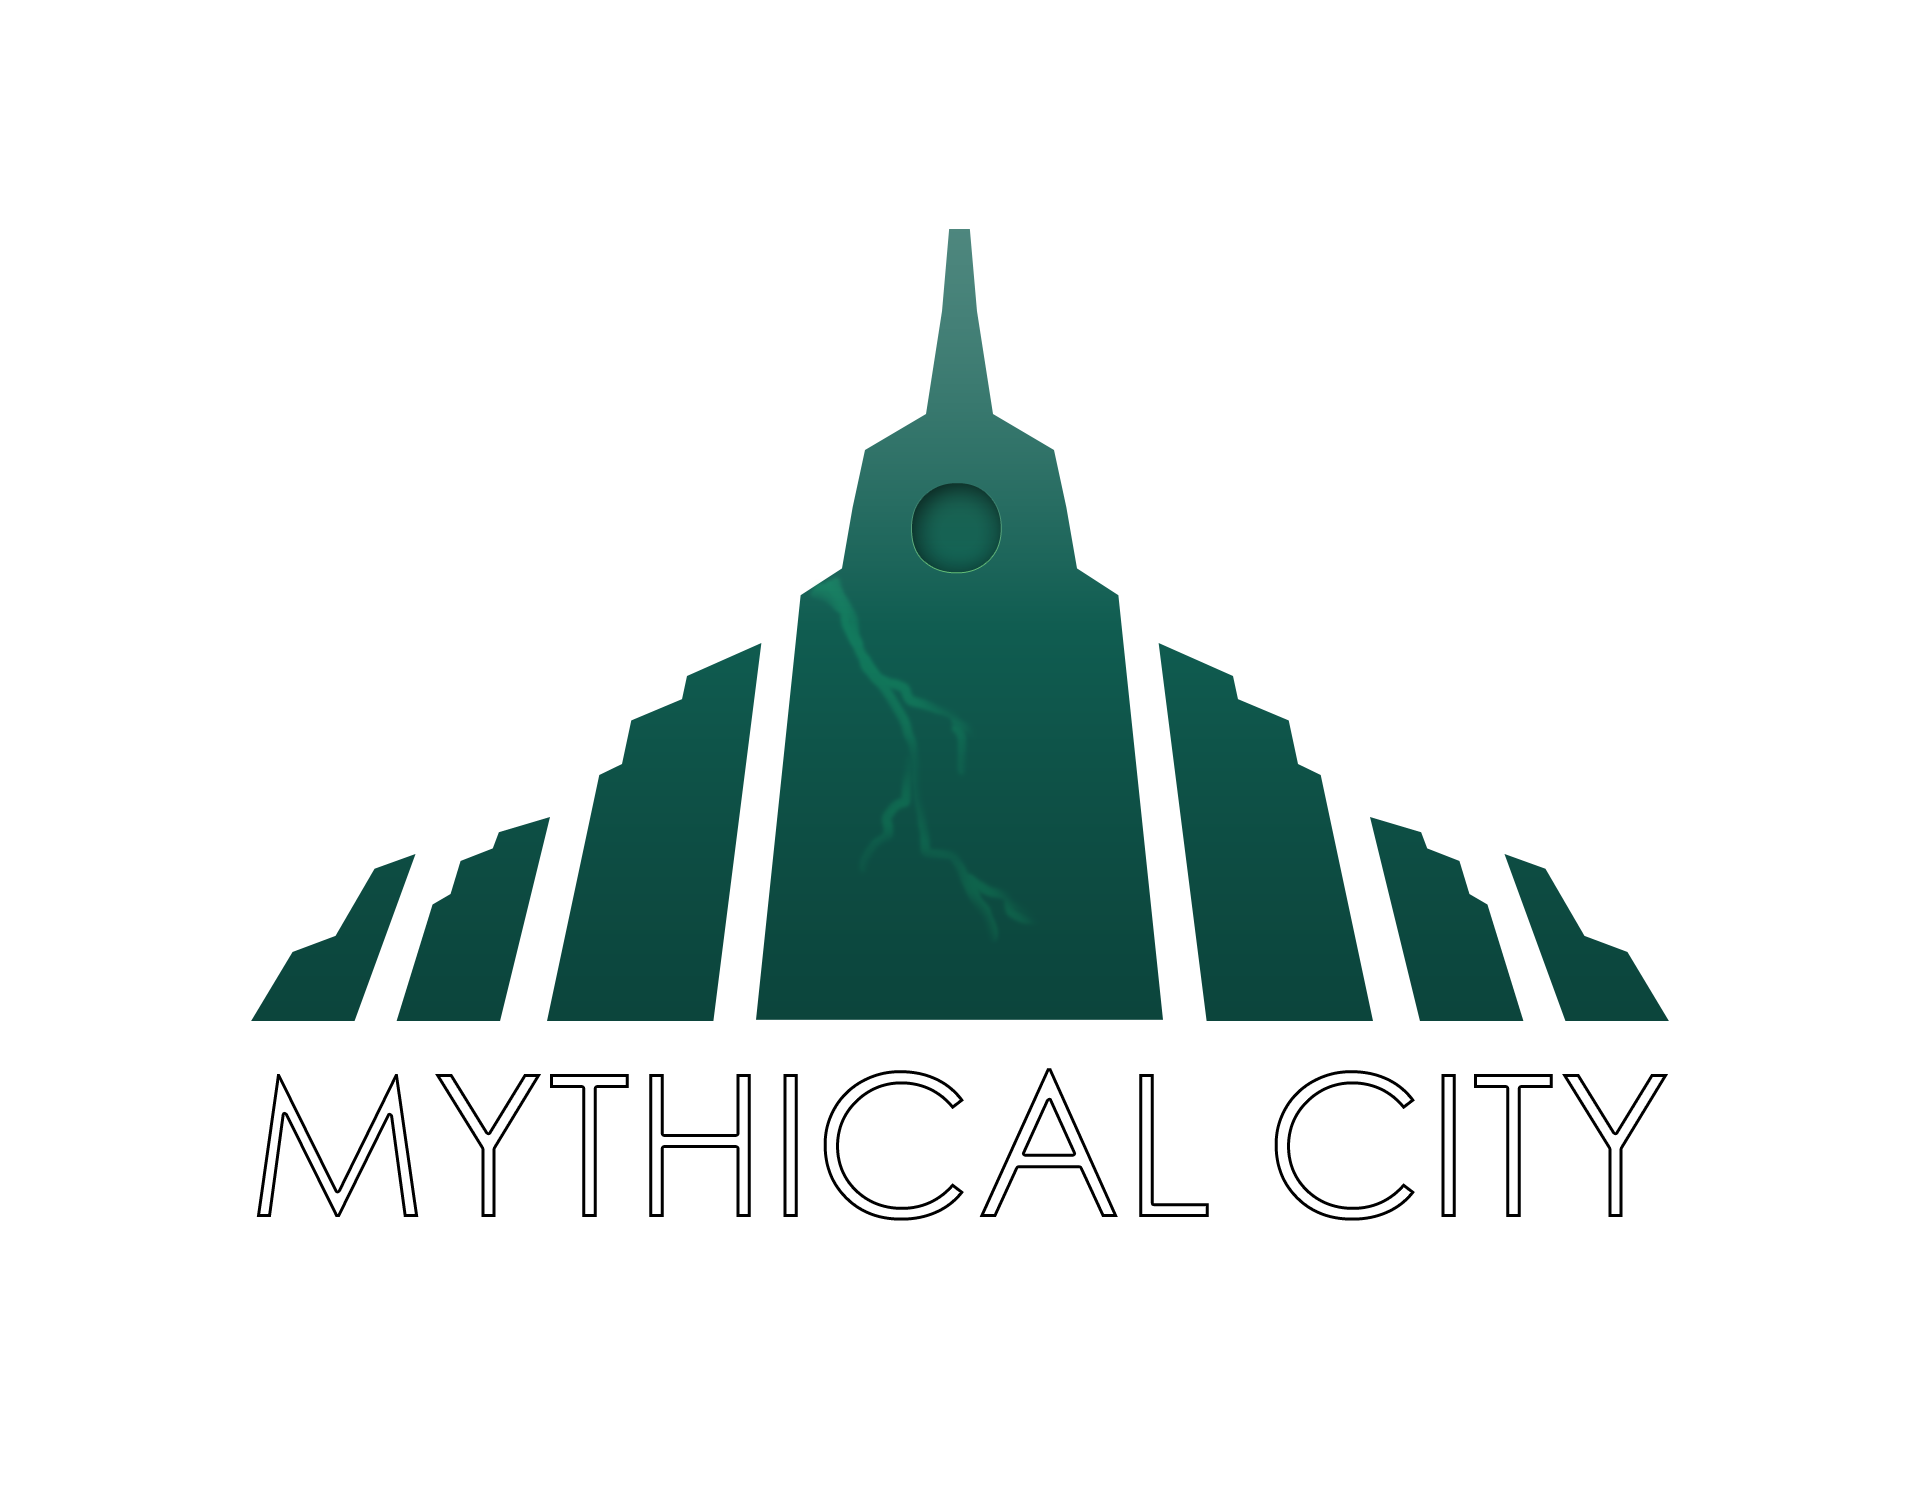 Mythical-City-Logo-Transparent-2015.png